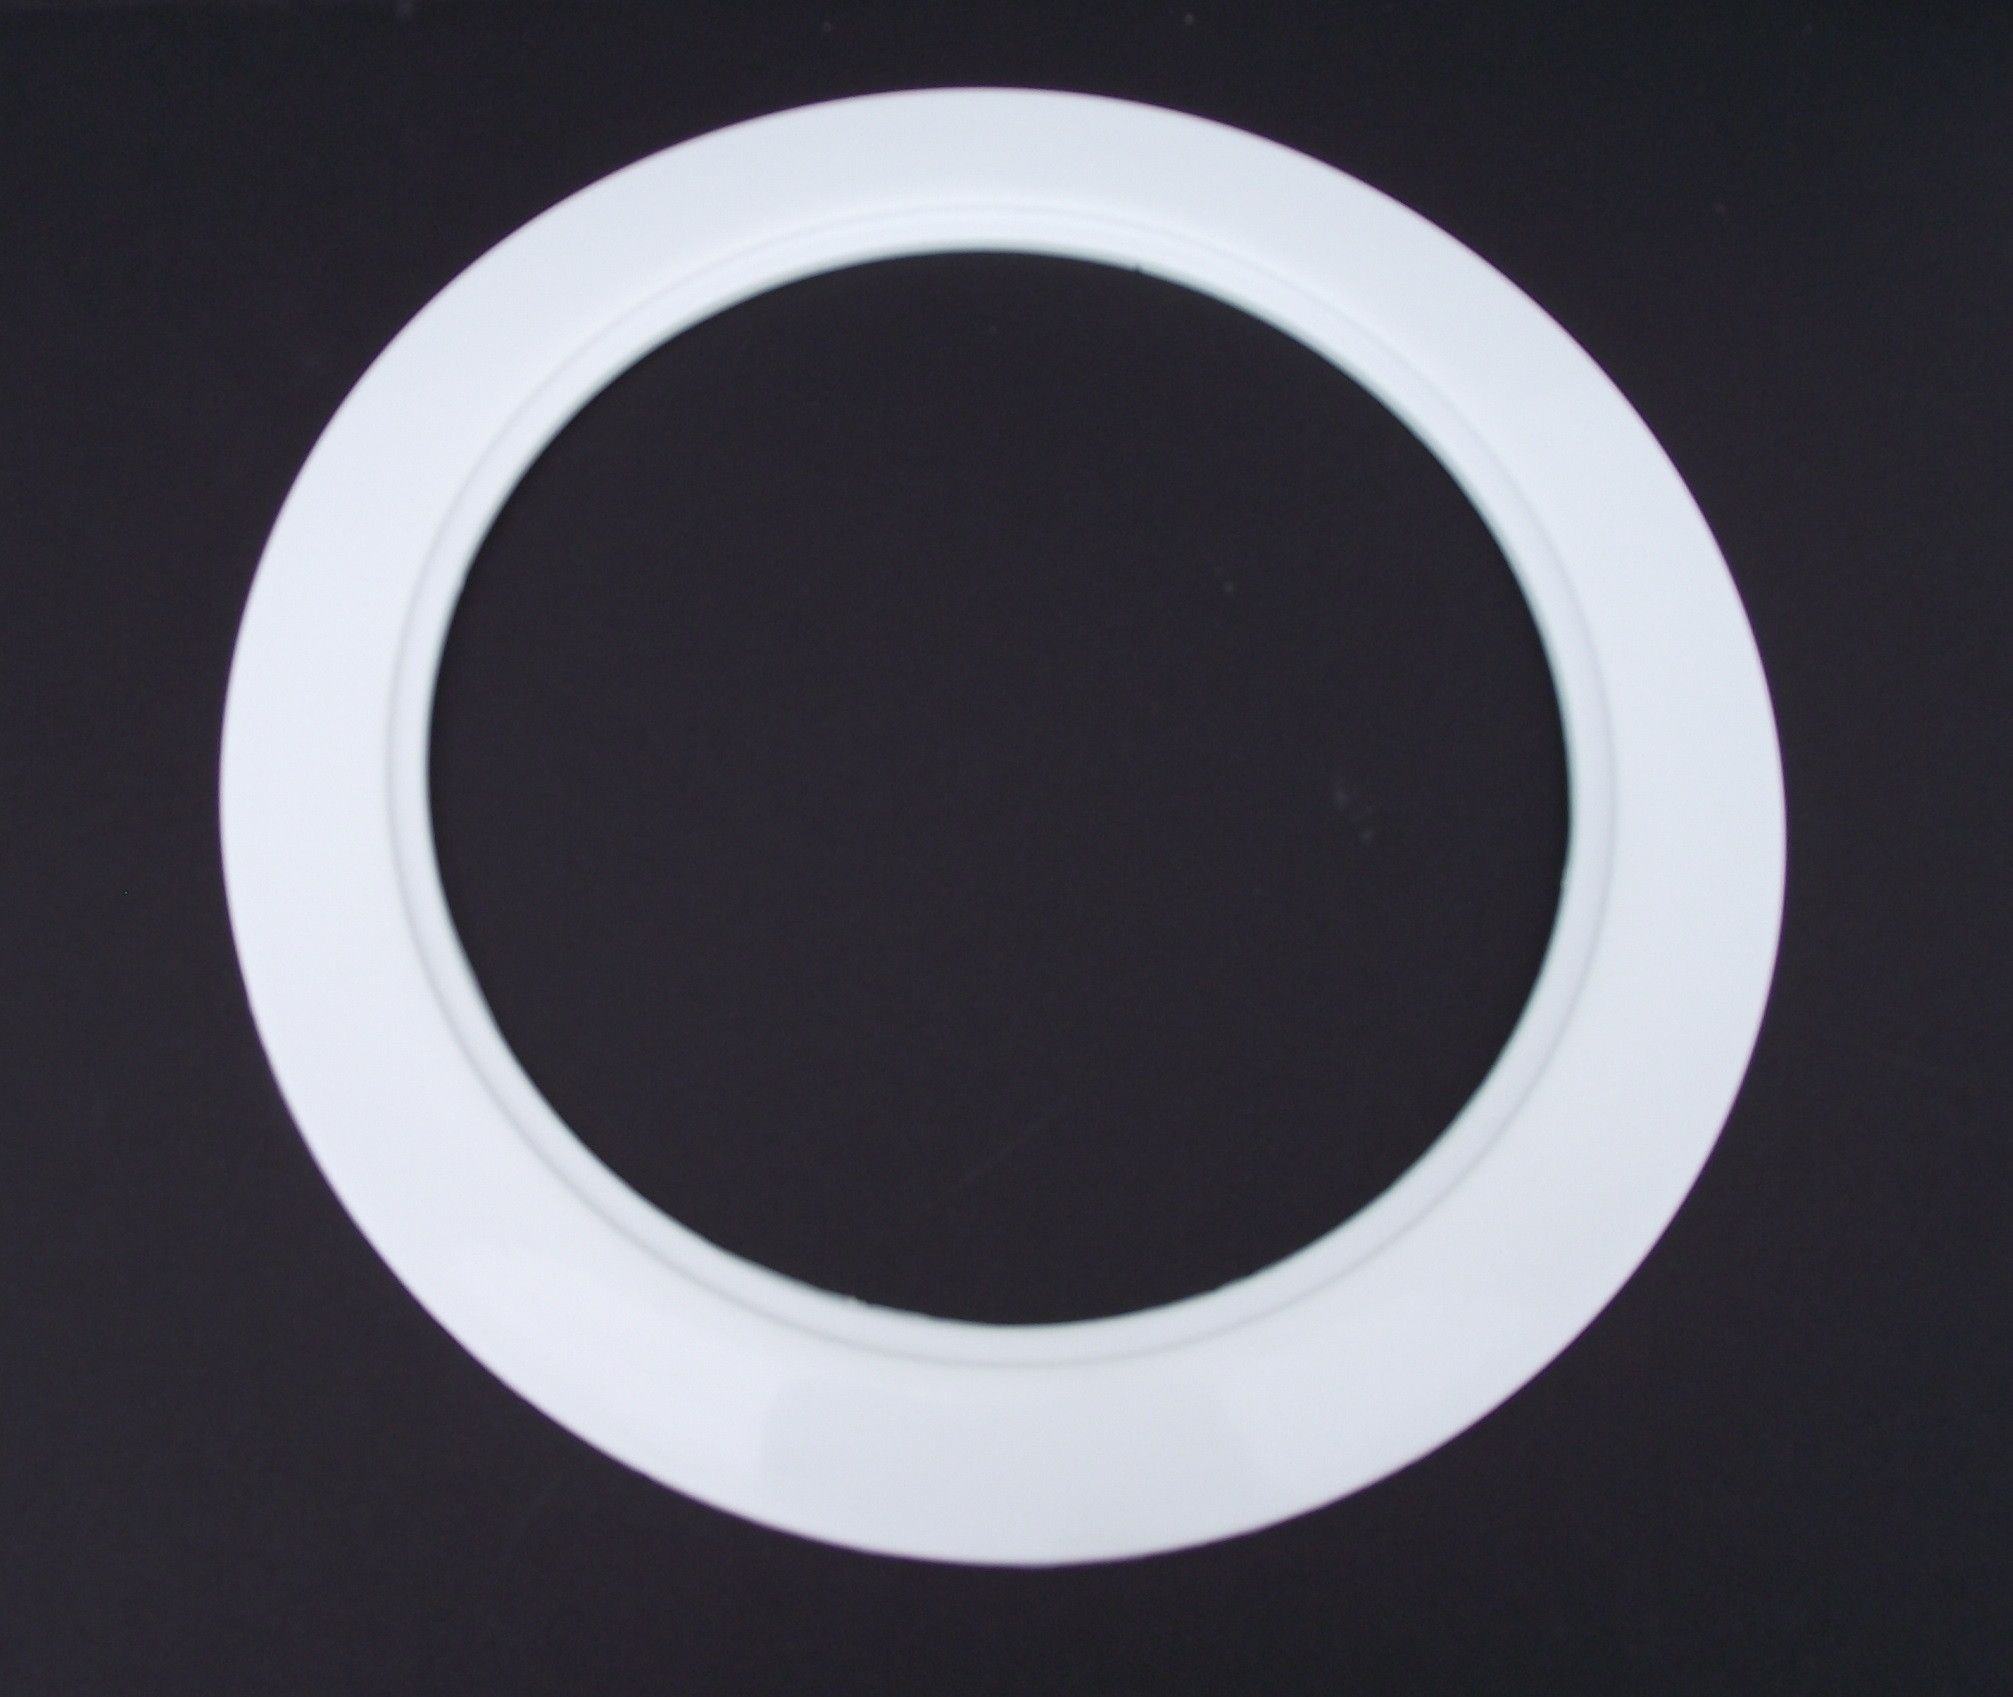 White light trim ring recessed can 6 inch regular sized lighting this is a new white color light trim ring it is designed for a 6 inch recessed trim ring ceiling light fixture the measurements of this recessed can aloadofball Choice Image